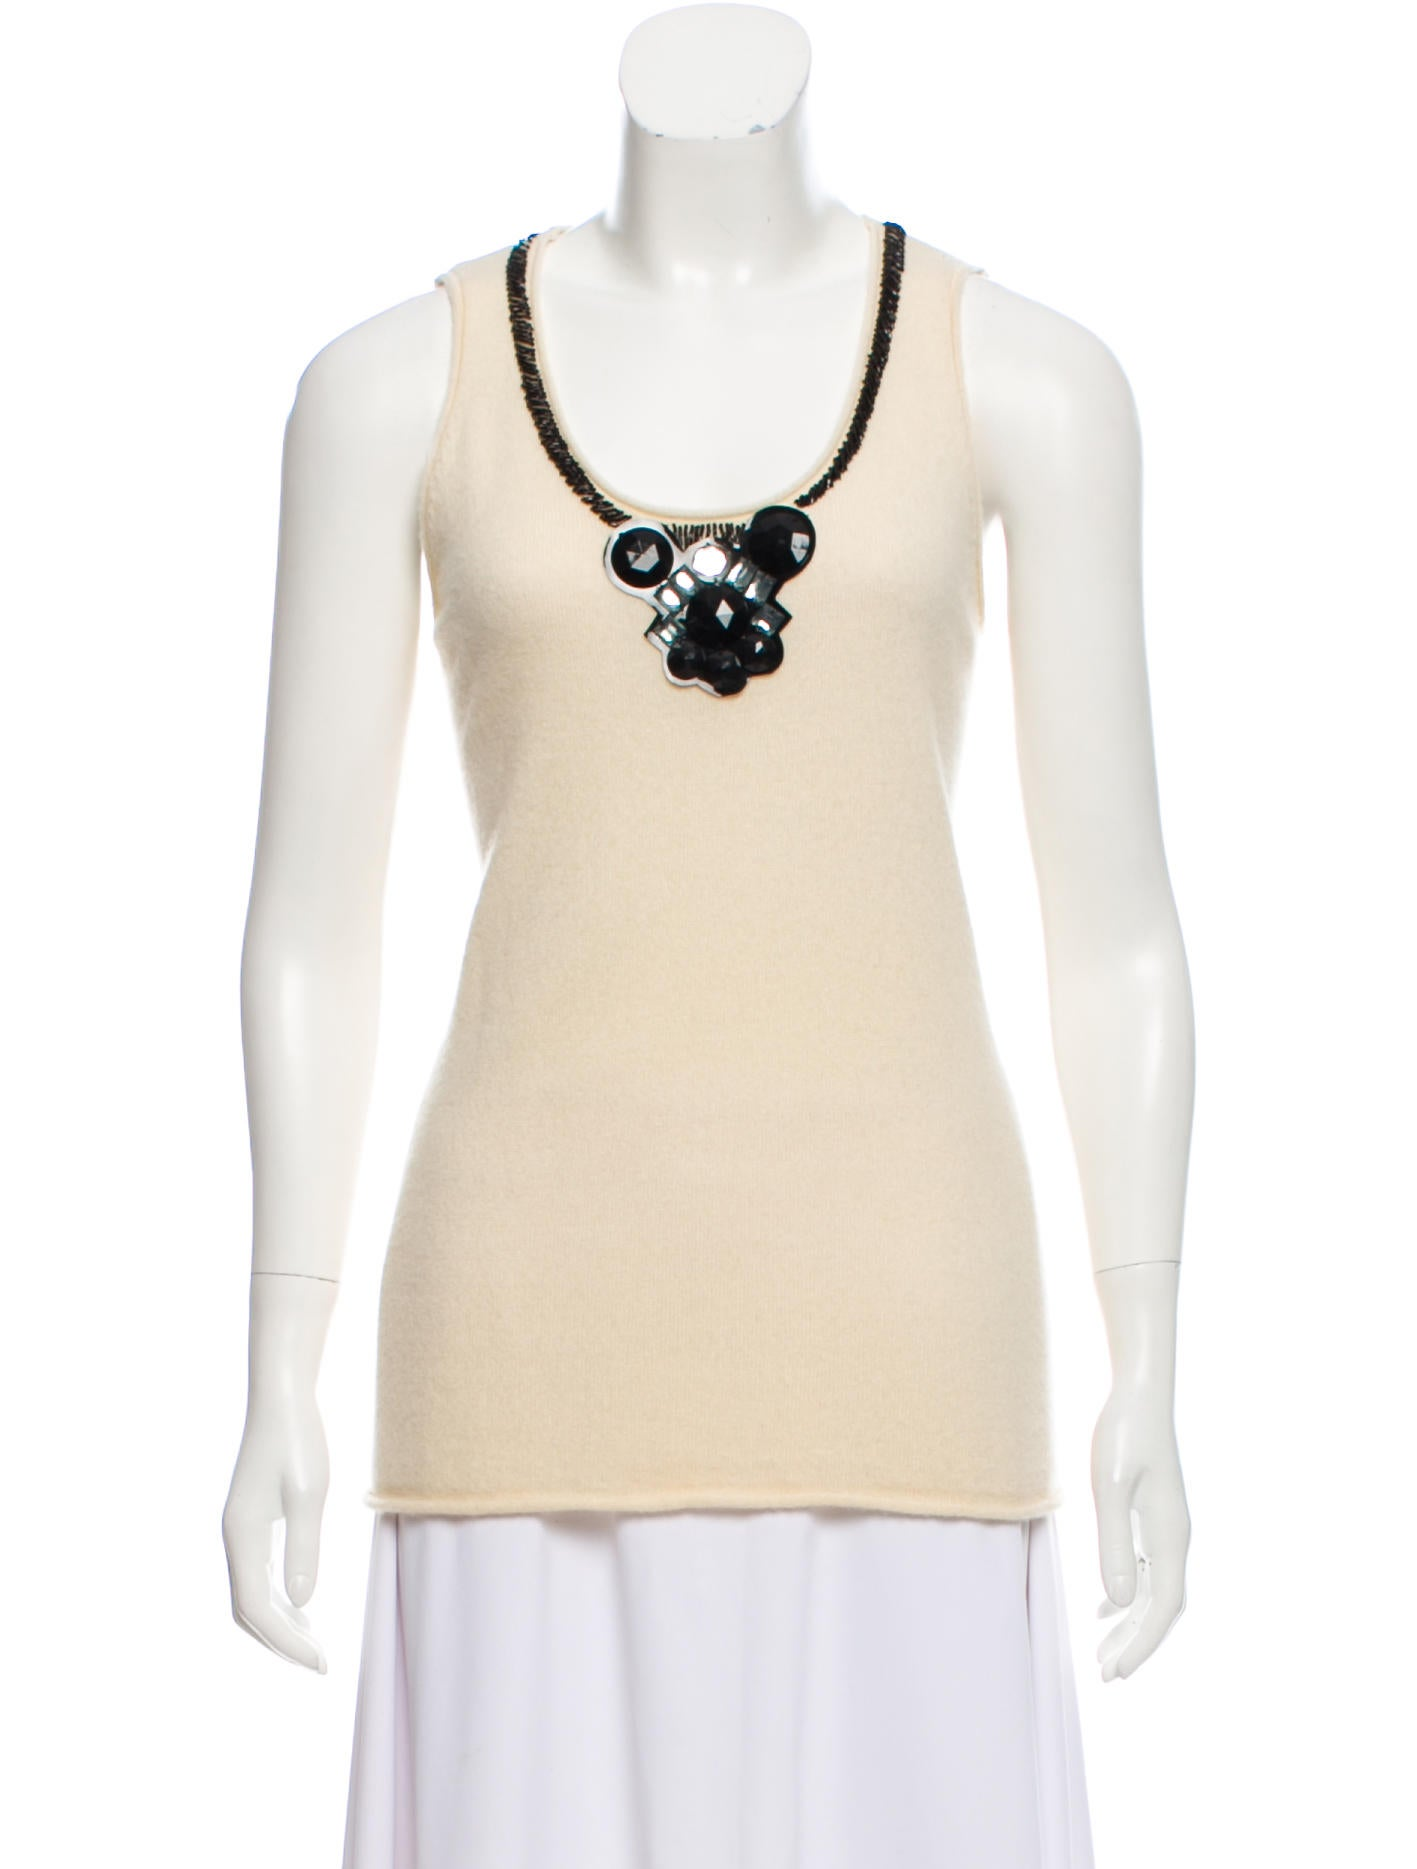 Tory Burch Cashmere Embellished Top Clothing Wto137195 The